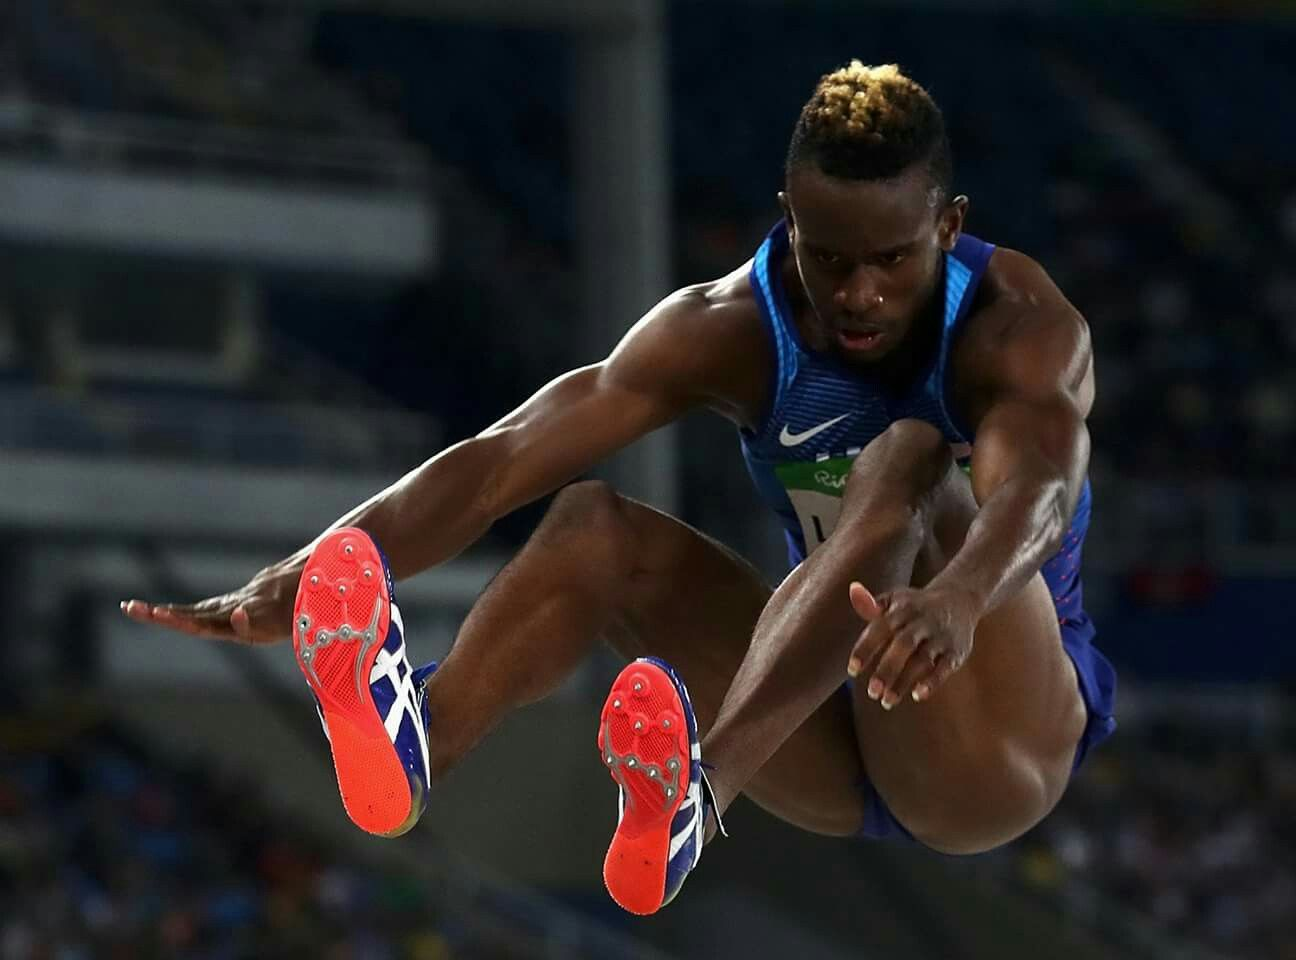 RIO DE JANEIRO, BRAZIL - AUGUST 13: Jarrion Lawson of the United States competes during the Men's Long Jump Final on Day 8 of the Rio 2016 Olympic Games at the Olympic Stadium on August 13, 2016 in Rio de Janeiro, Brazil. (Photo by Alexander Hassenstein/Getty Images) — in Rio de Janeiro, Brazil.